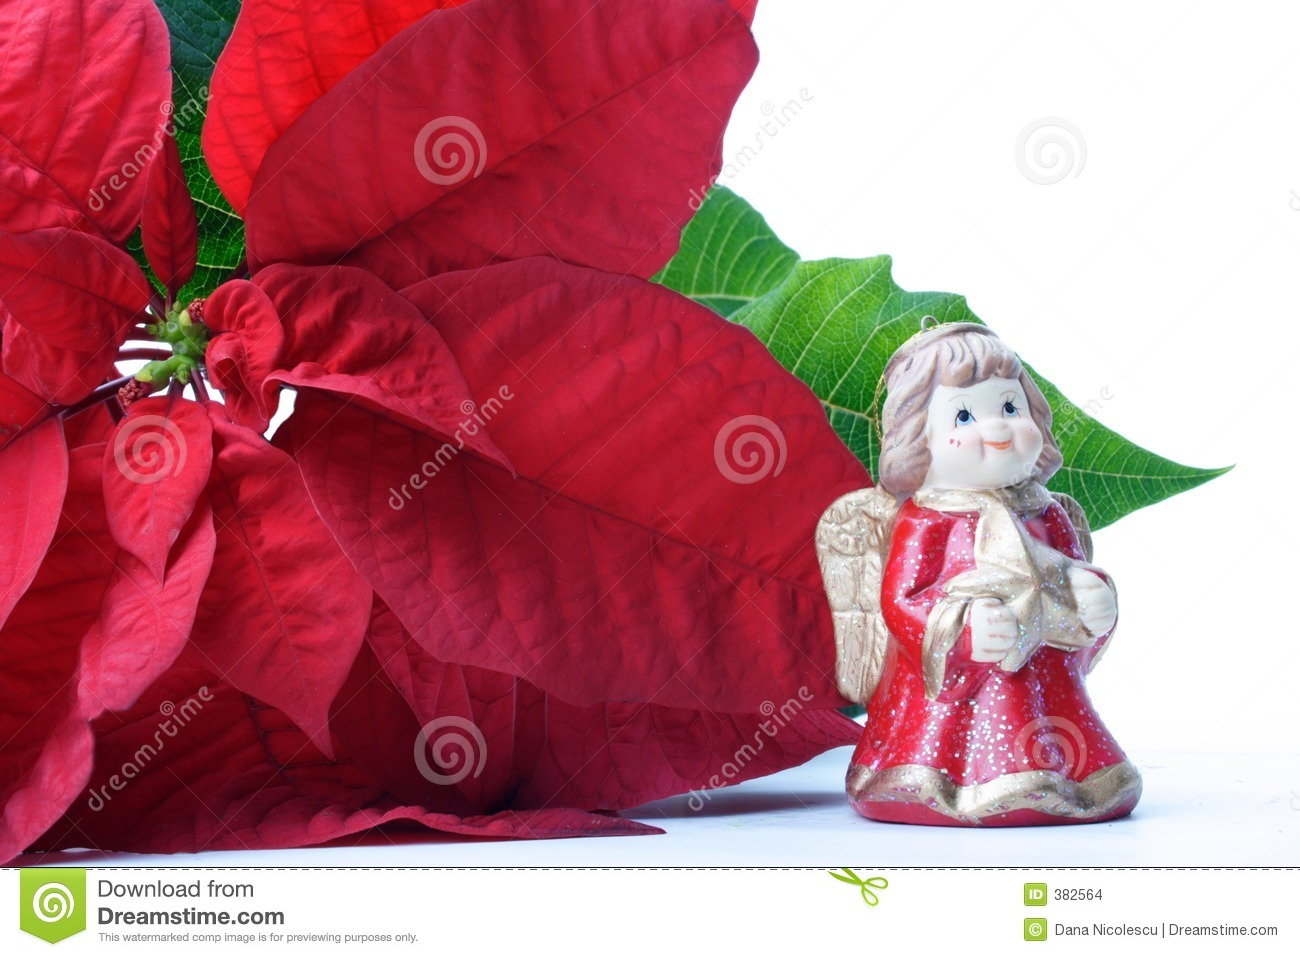 Poinsettias deco